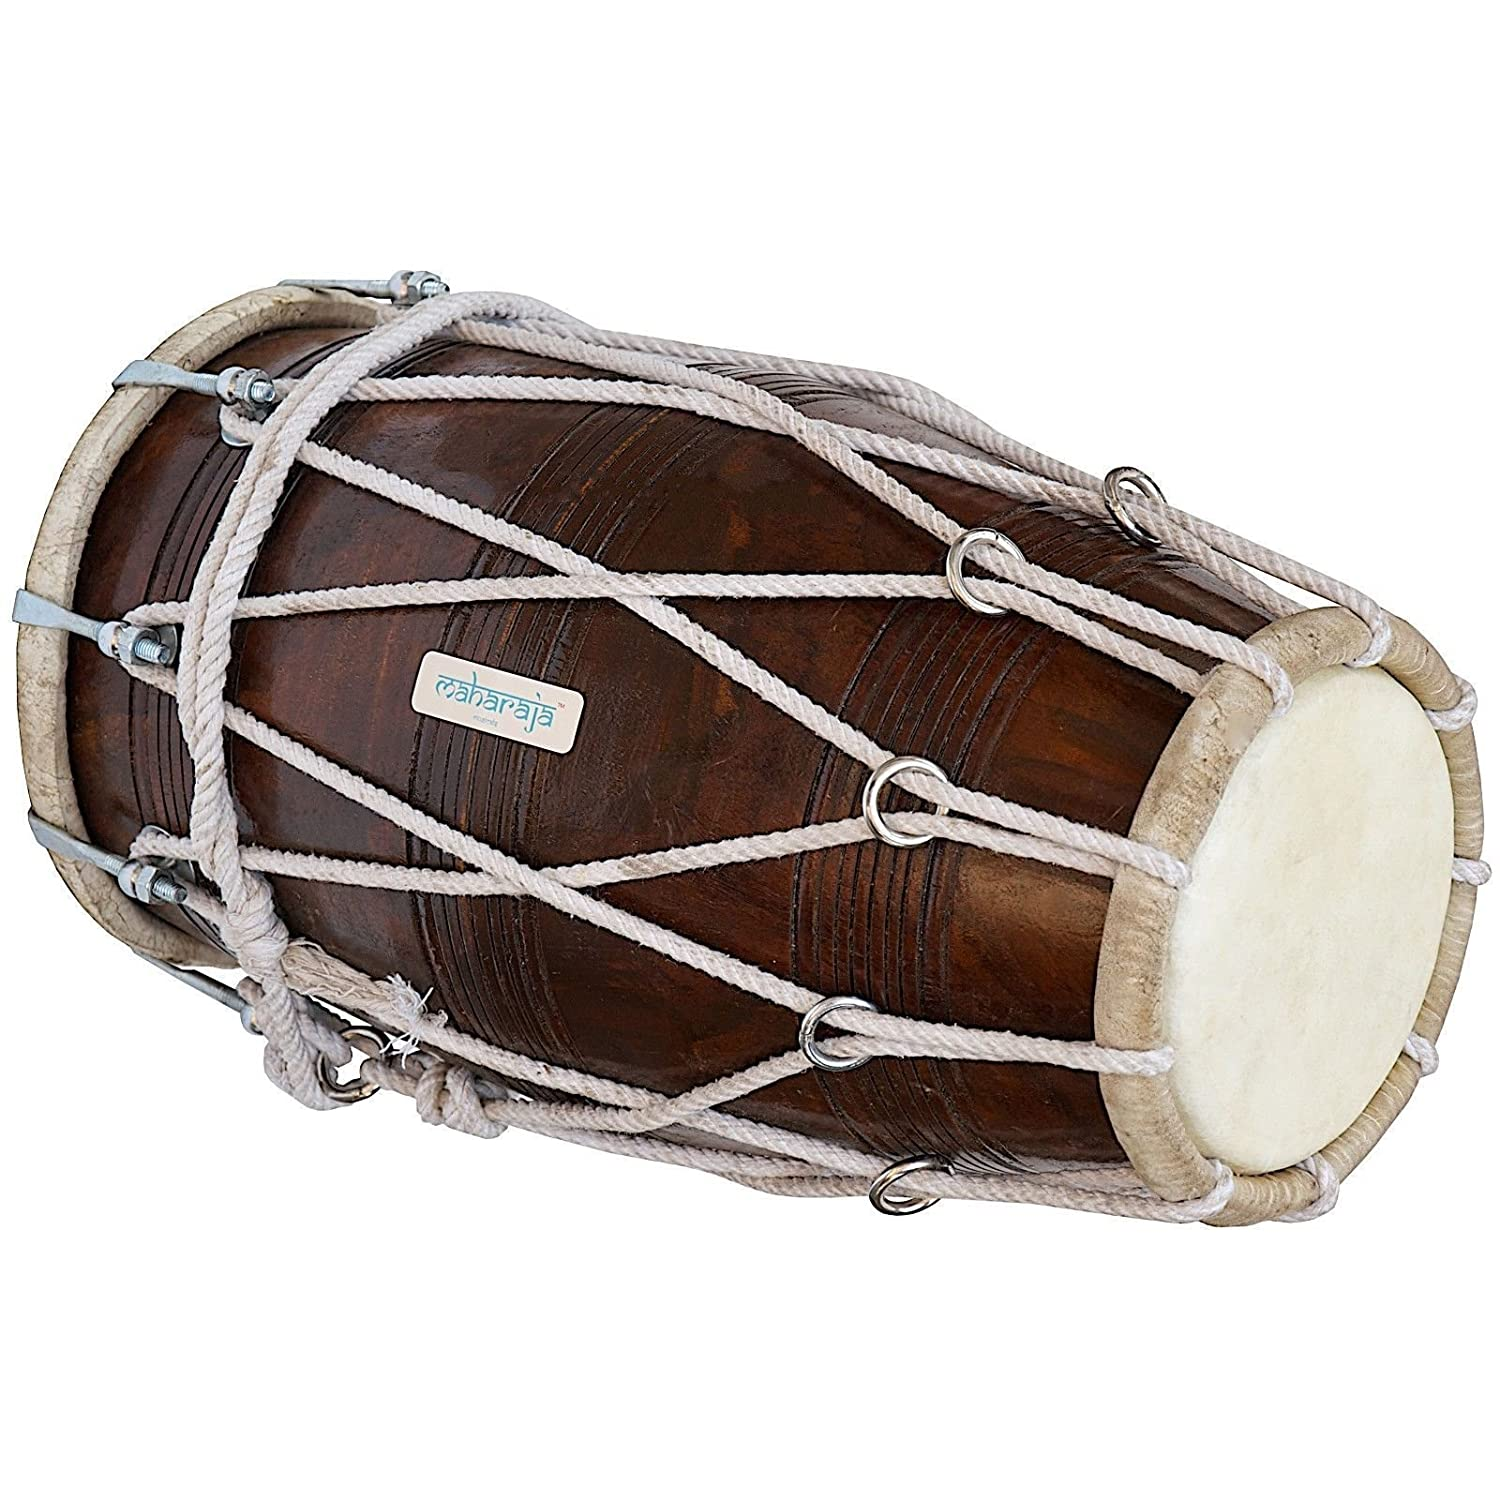 DHOLAK|SAI|NEW DHOLAK|ROPE TUNED|PURCHASE WEDDING DHOLKI|INDIA|WITH BAG|BBC SAI MUSICAL